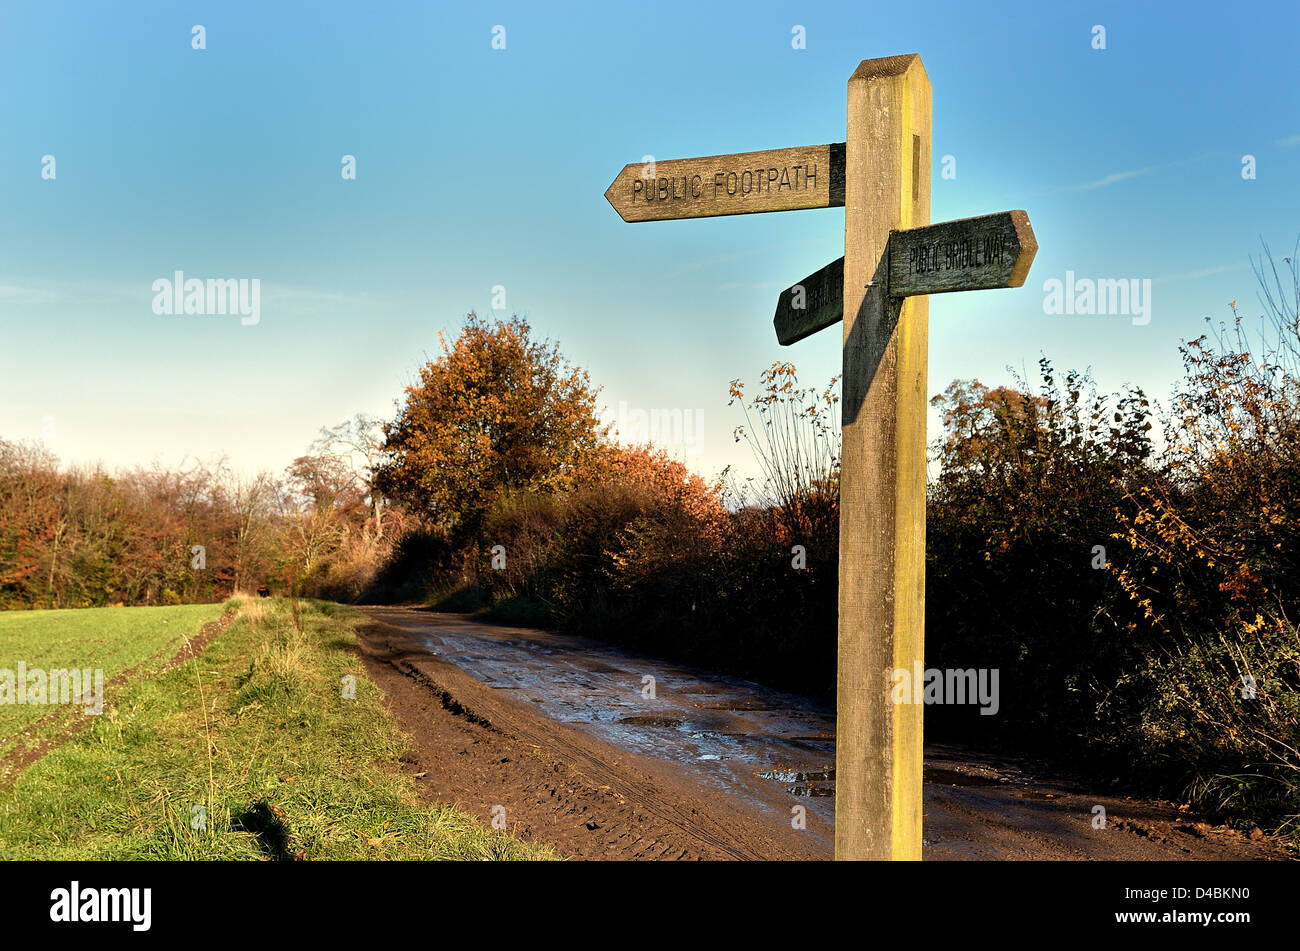 Close up of public footpath sign in Surrey countryside UK - Stock Image